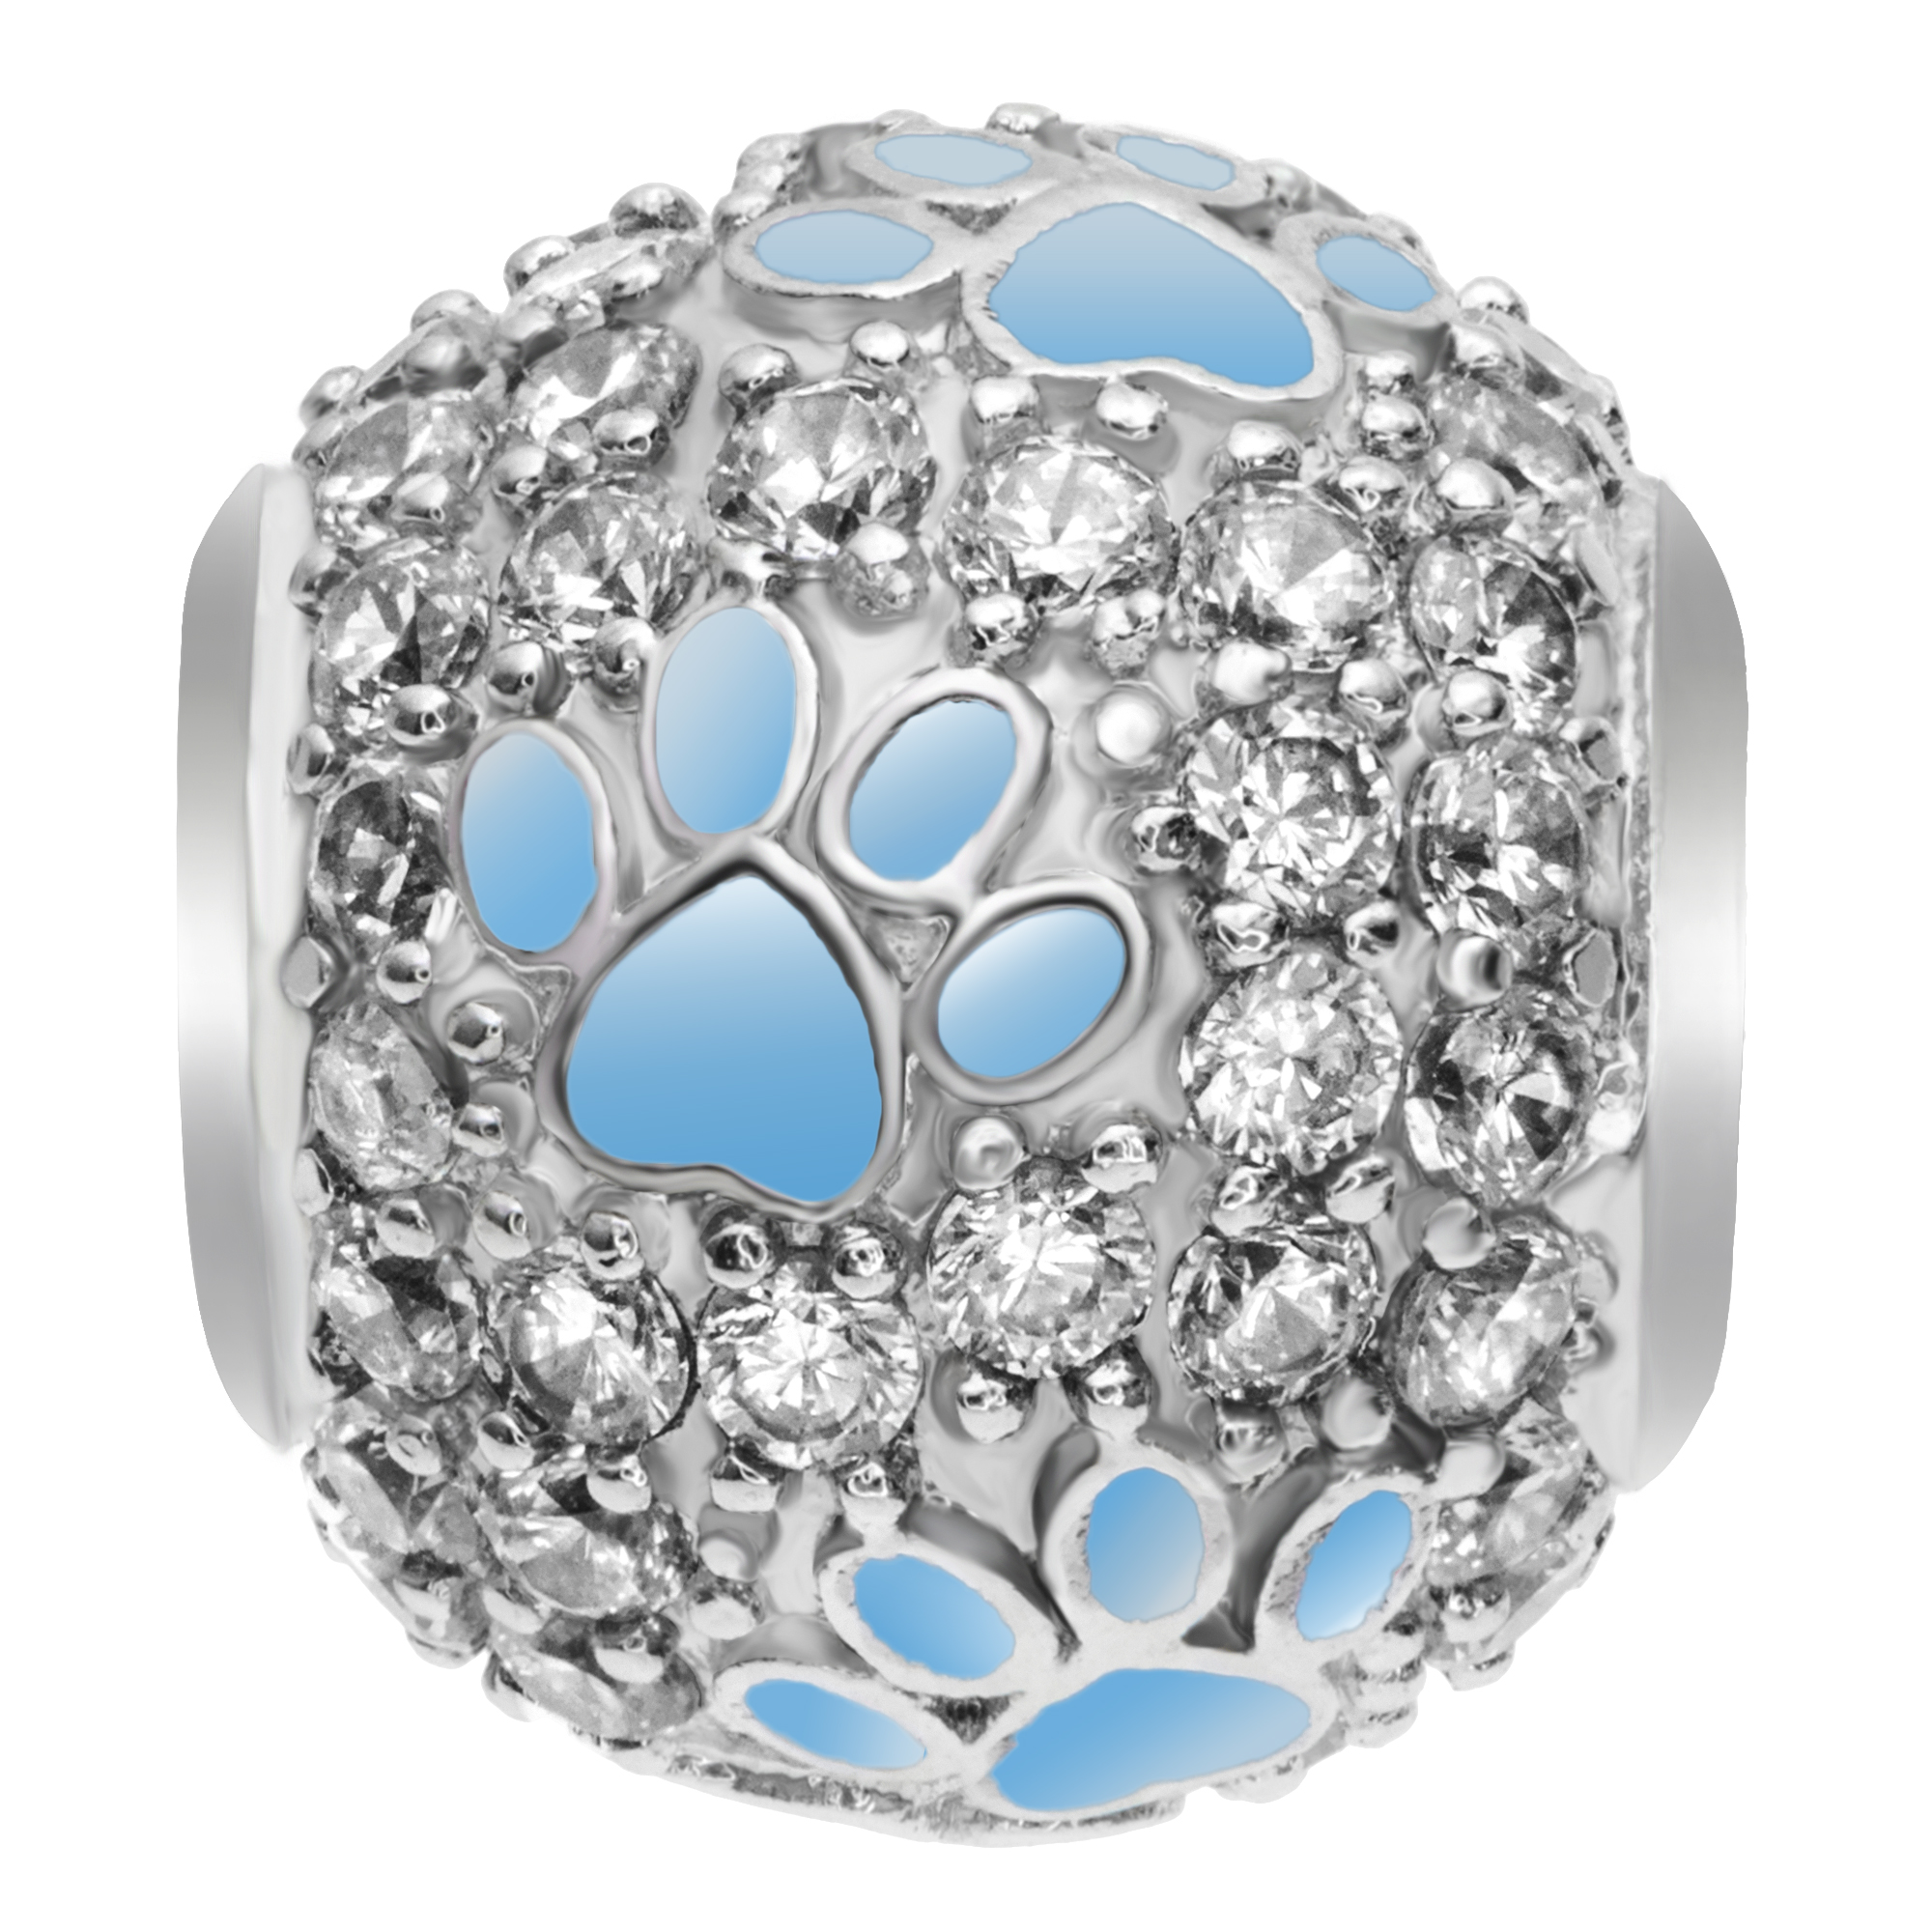 Rhodium on 925 Sterling Silver Blue Enamel Puppy Dog Paw Footprint Bead for European Charm Bracelets Made of Swarovski Elements Crystals